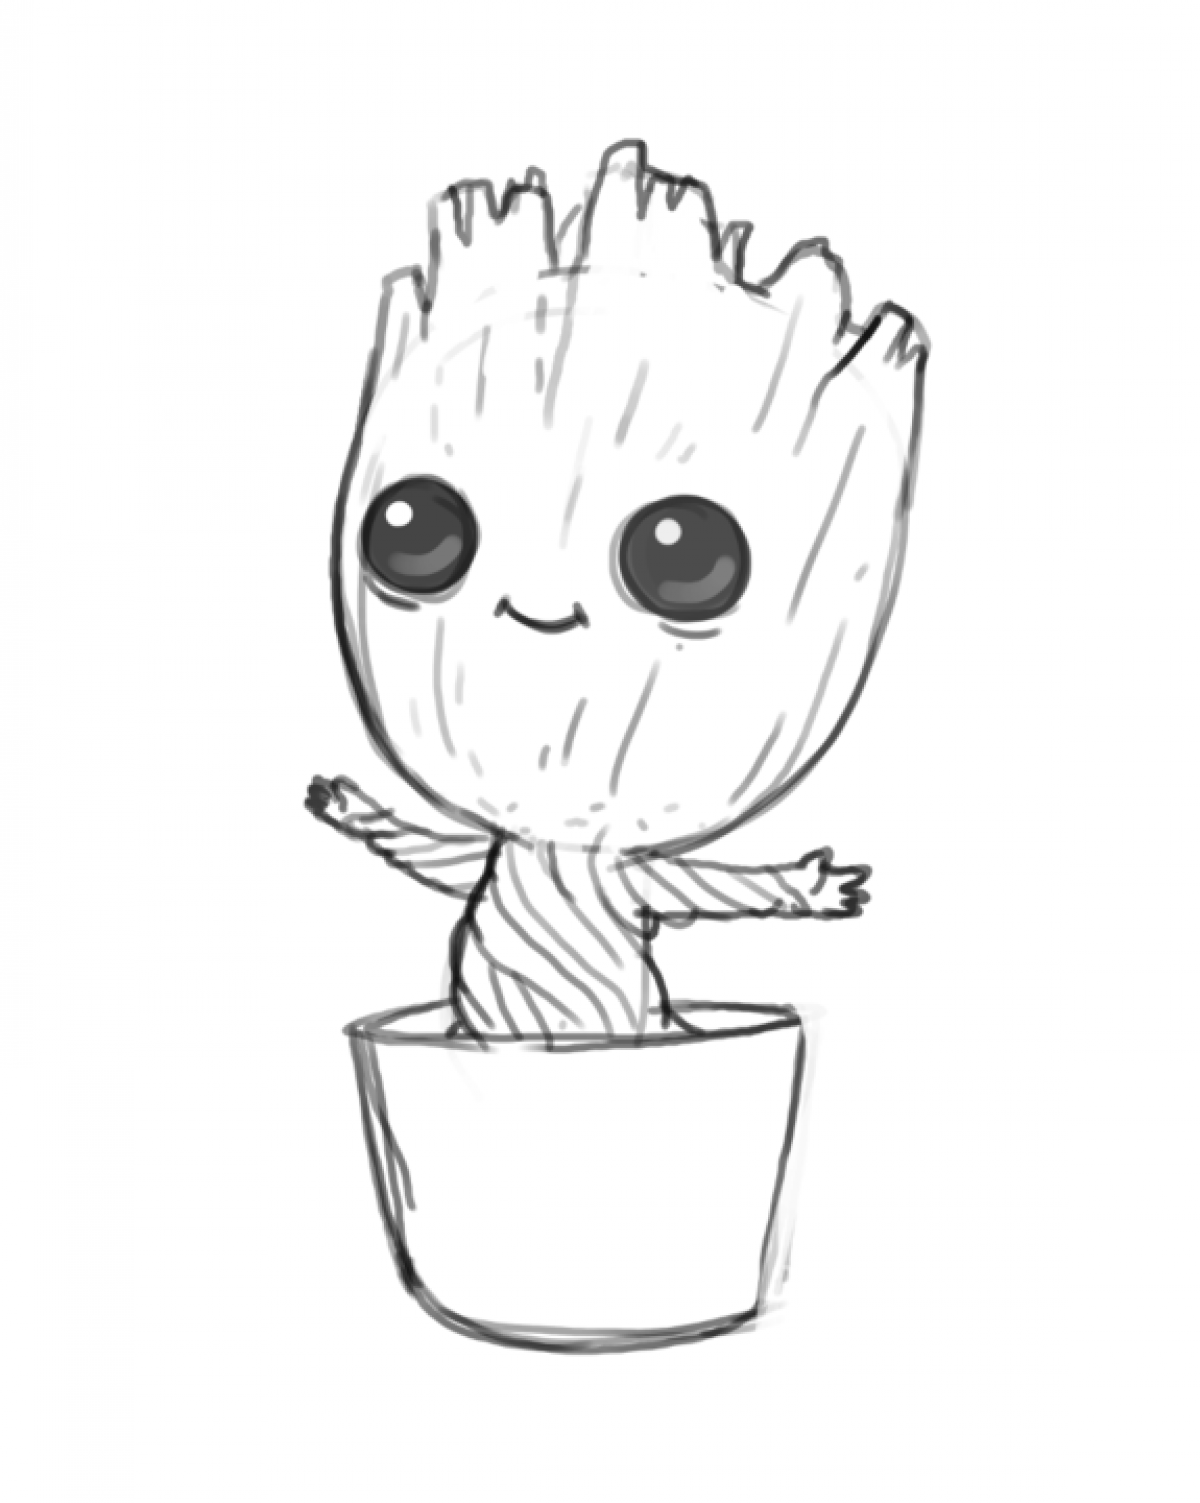 2014 07 01 archive together with 764415736725021265 further  as well esin further Mondo Guardians Of The Galaxy Vol 2 Baby Groot Treehugger. on lego movie figure set